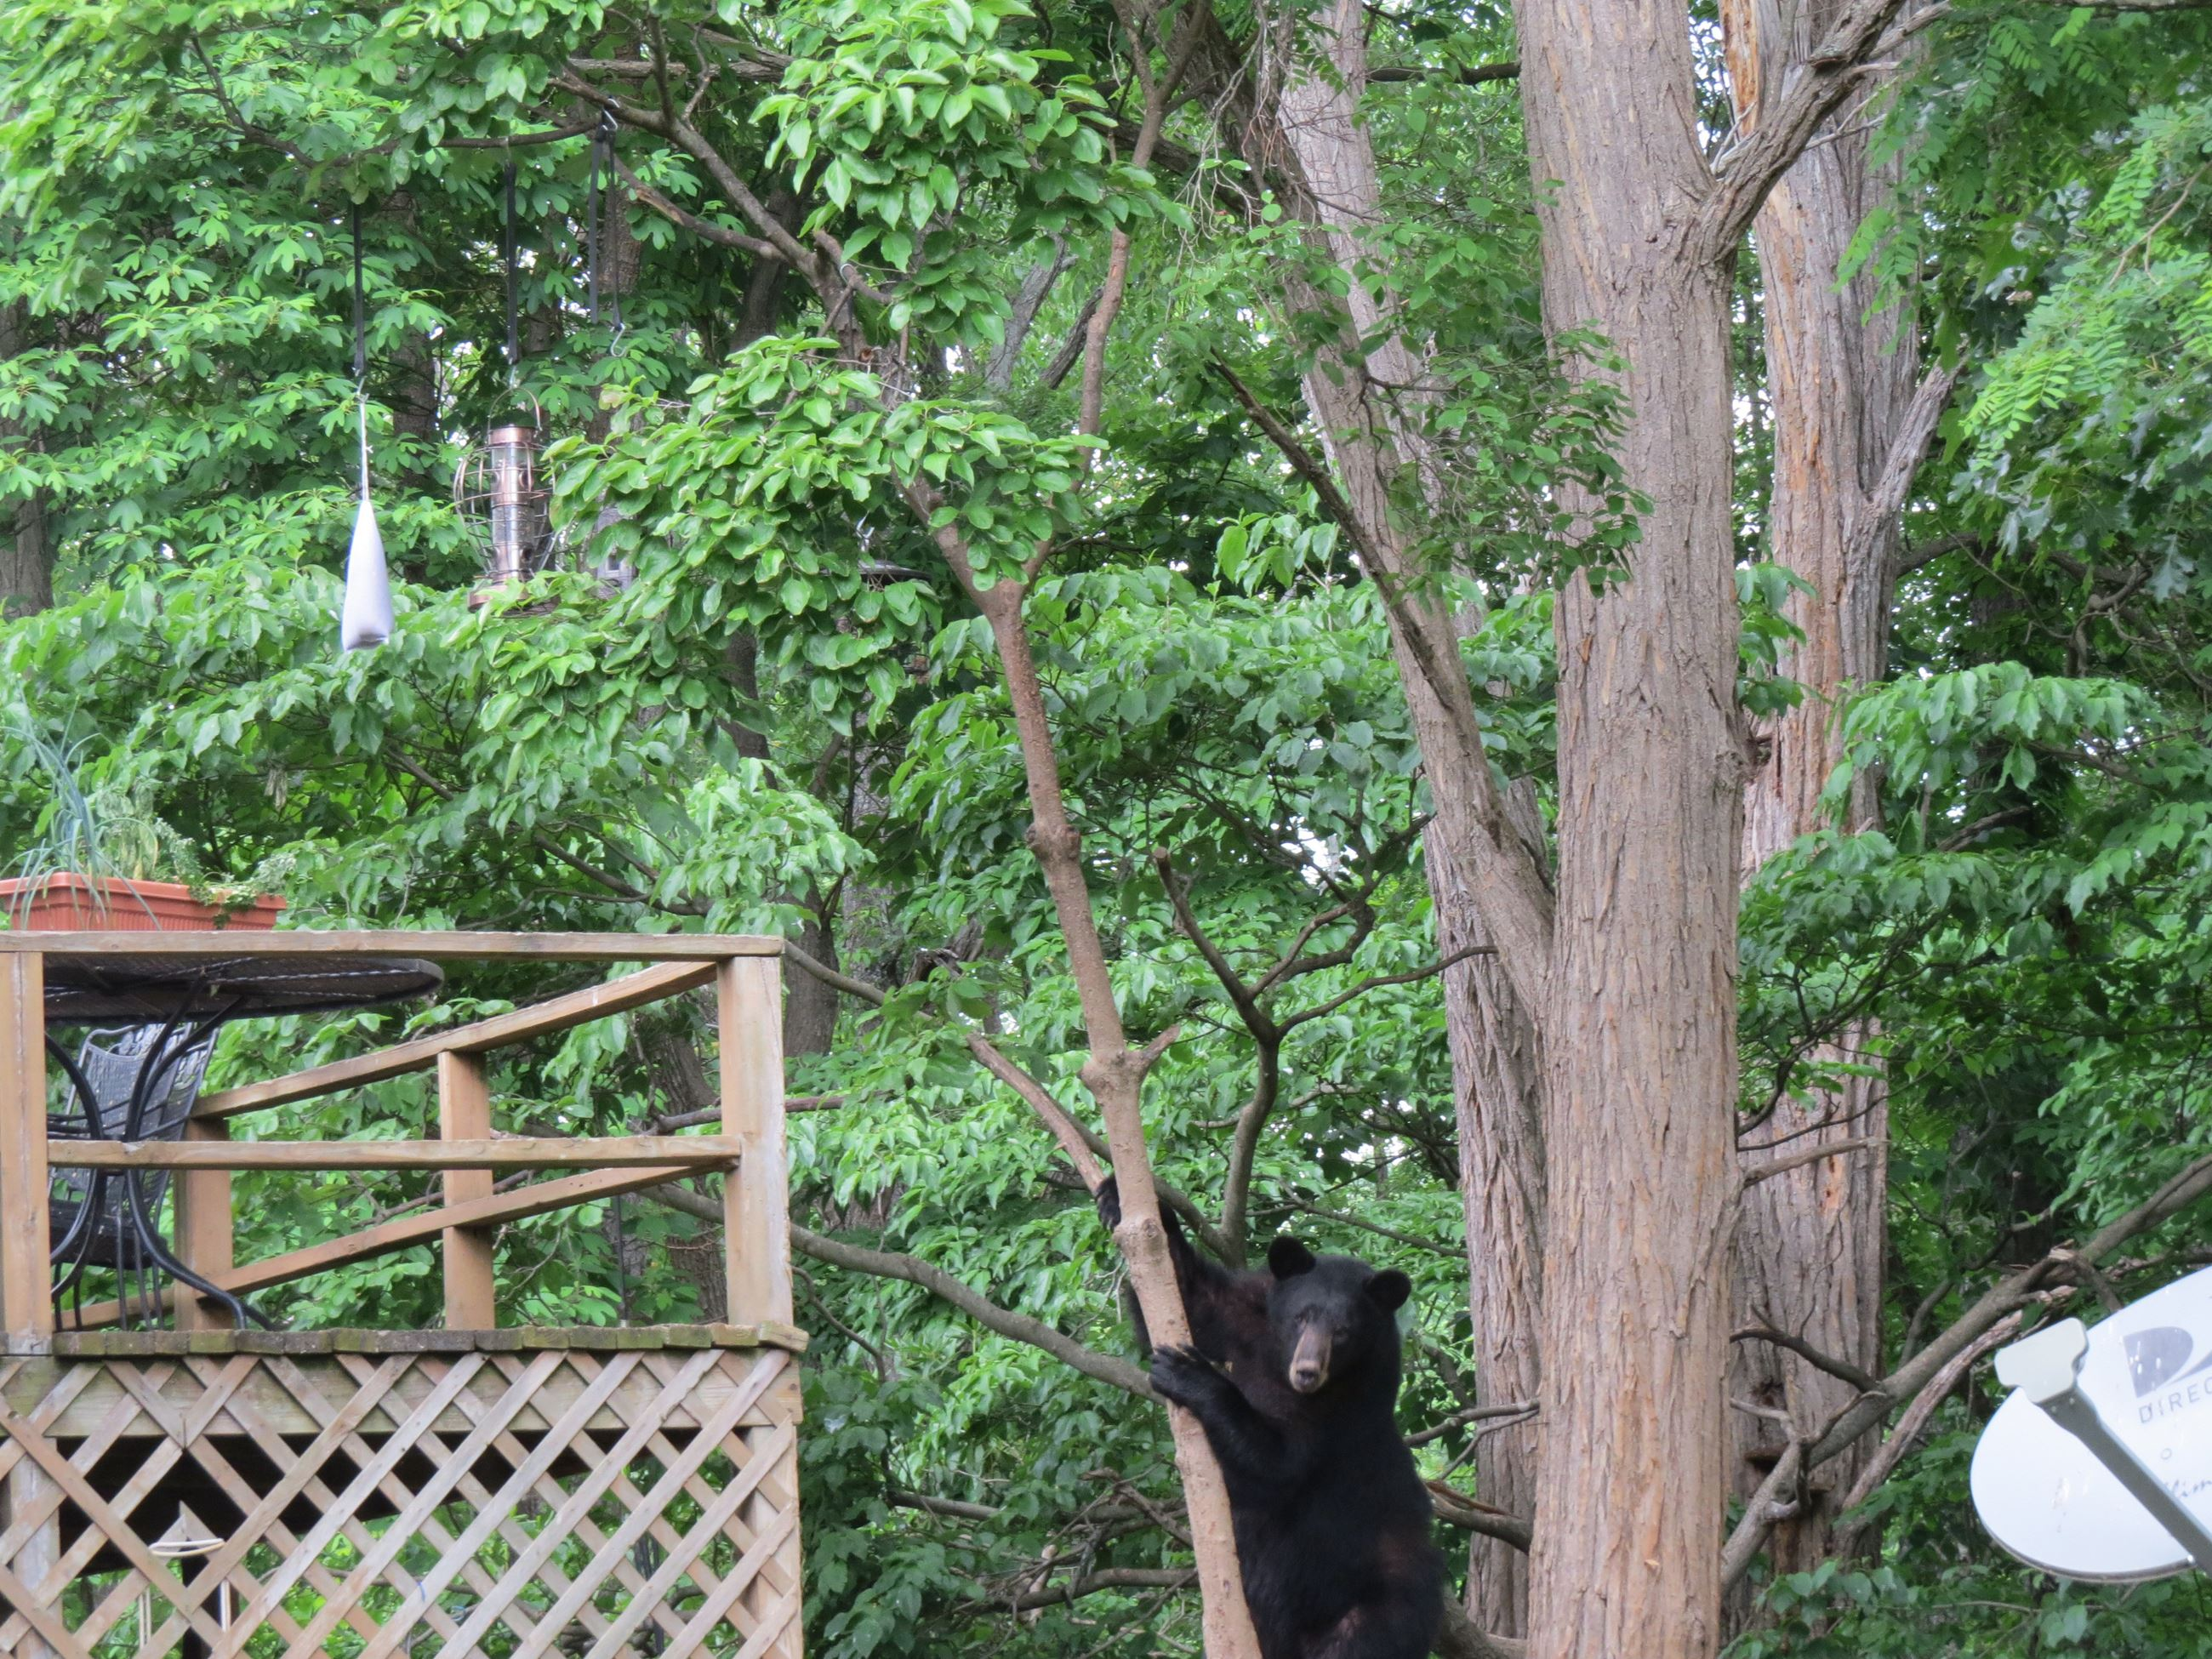 Photo of a black bear at bird feeders